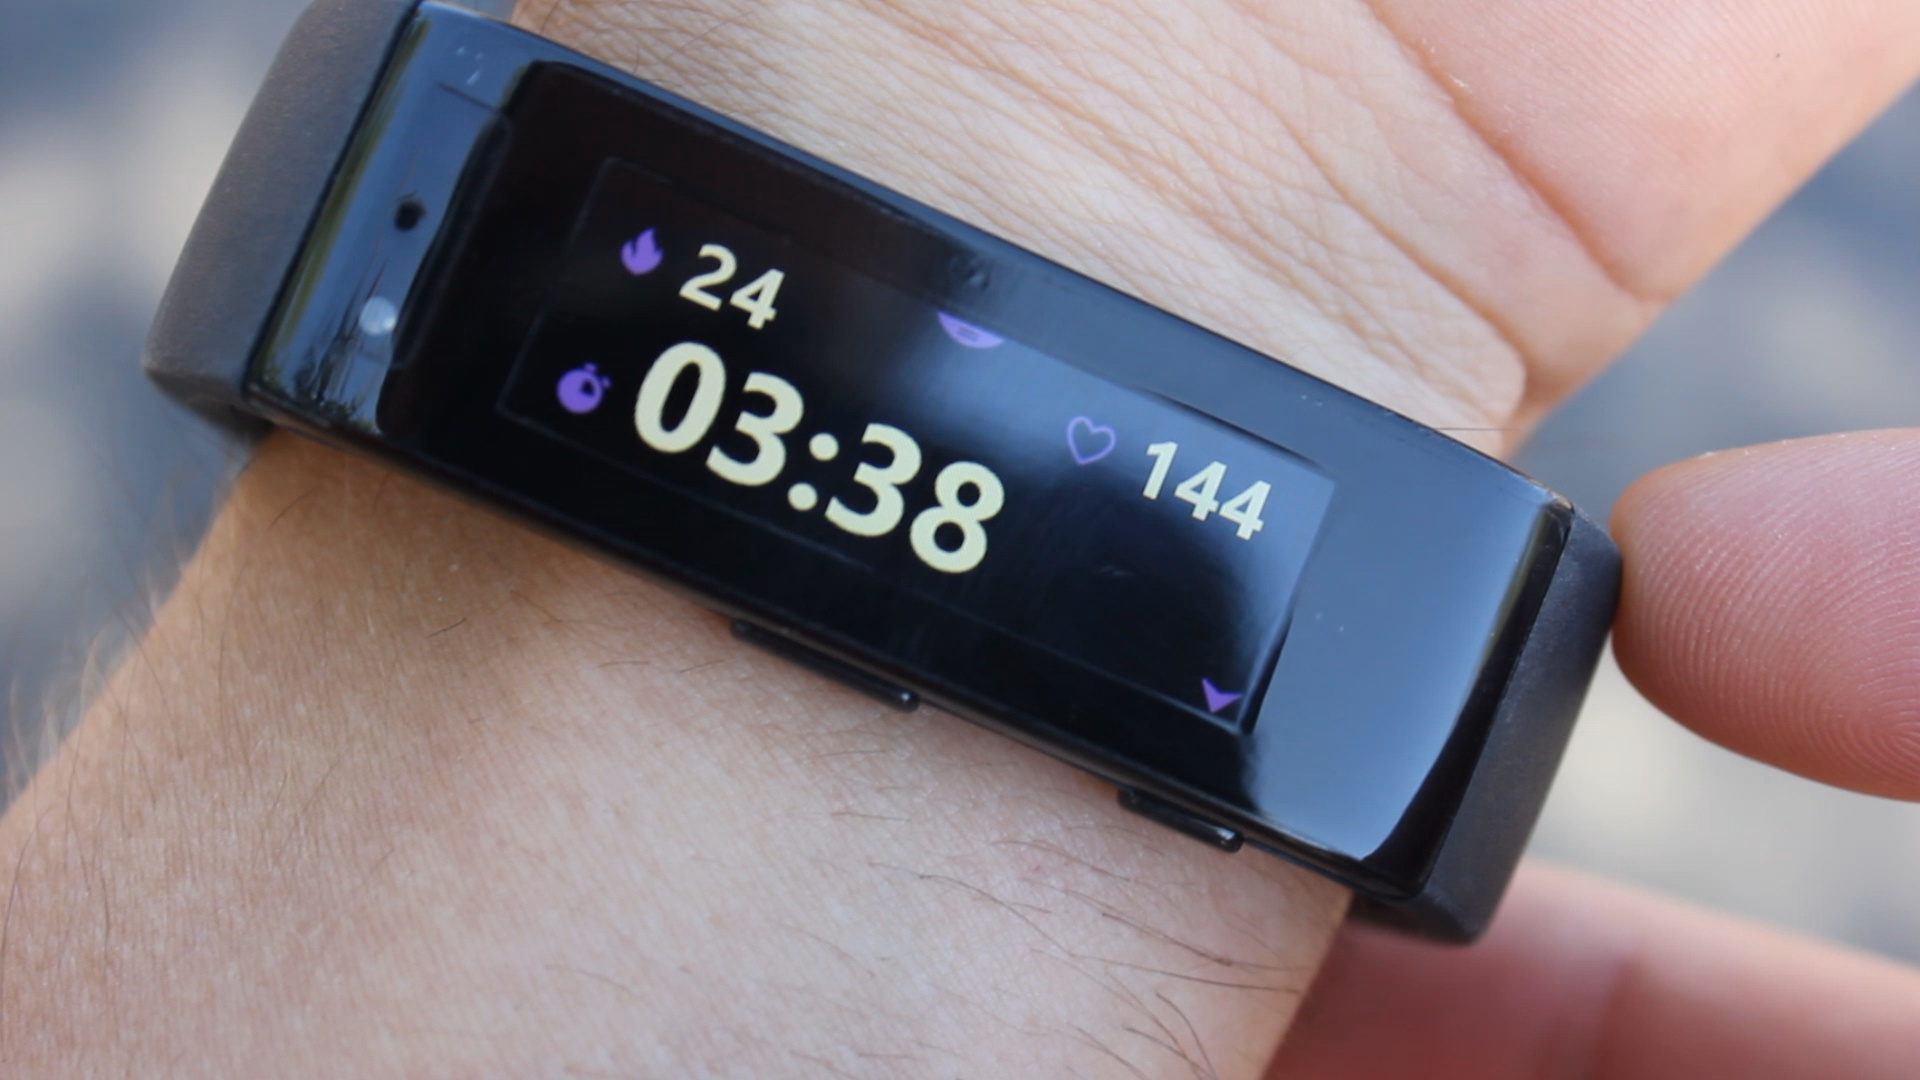 Review of Microsoft Band as a fitness watch 3